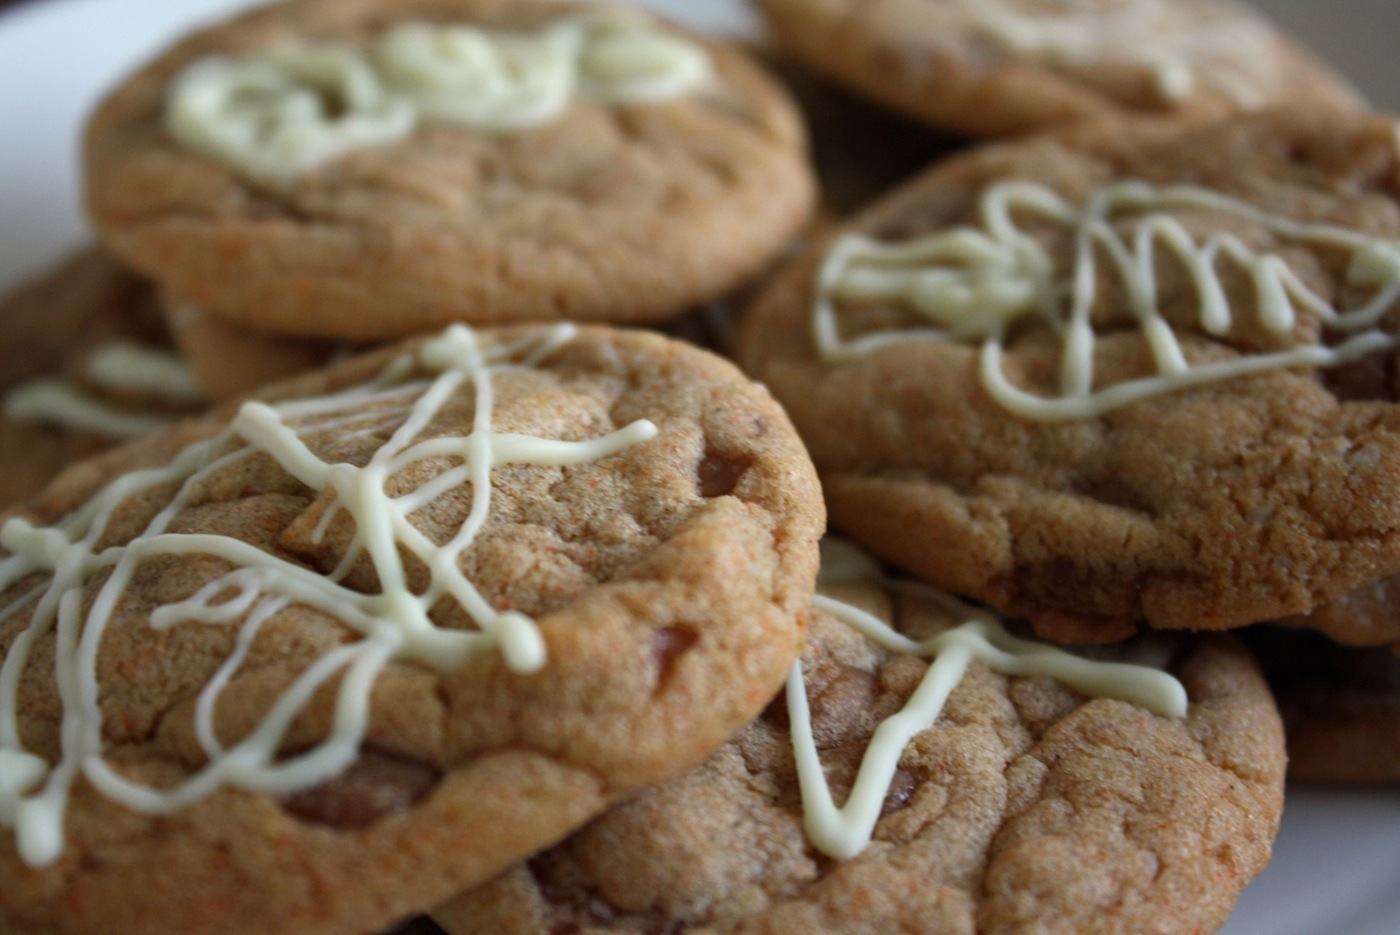 Drizzle white chocolate on caramel pumpkin spice cookies